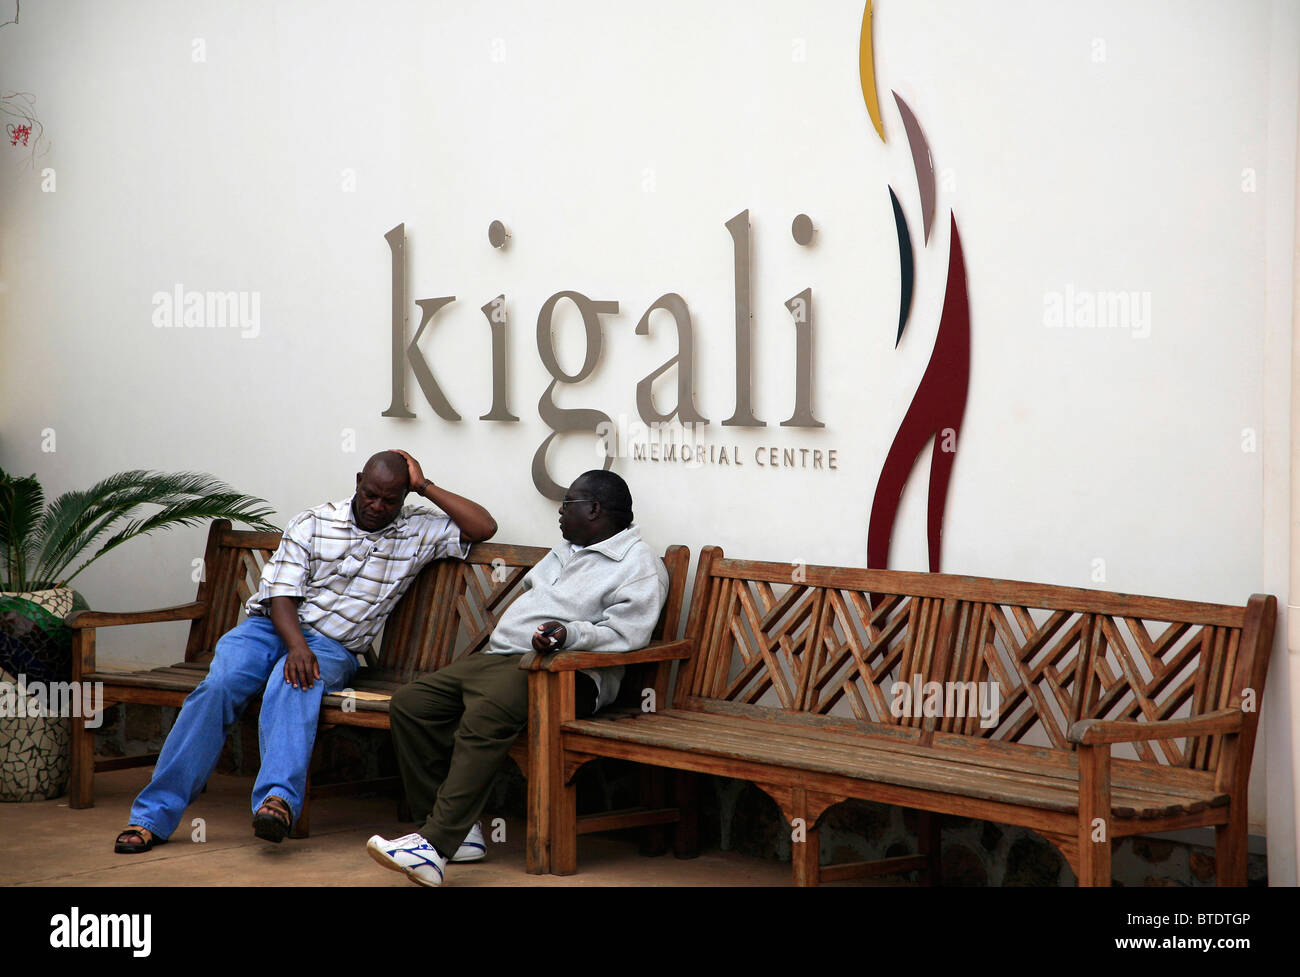 Kigali Memorial Centre in Kigali, Rwanda, museum and memorial to the one million Rwandans killed in the 1994 genocide - Stock Image